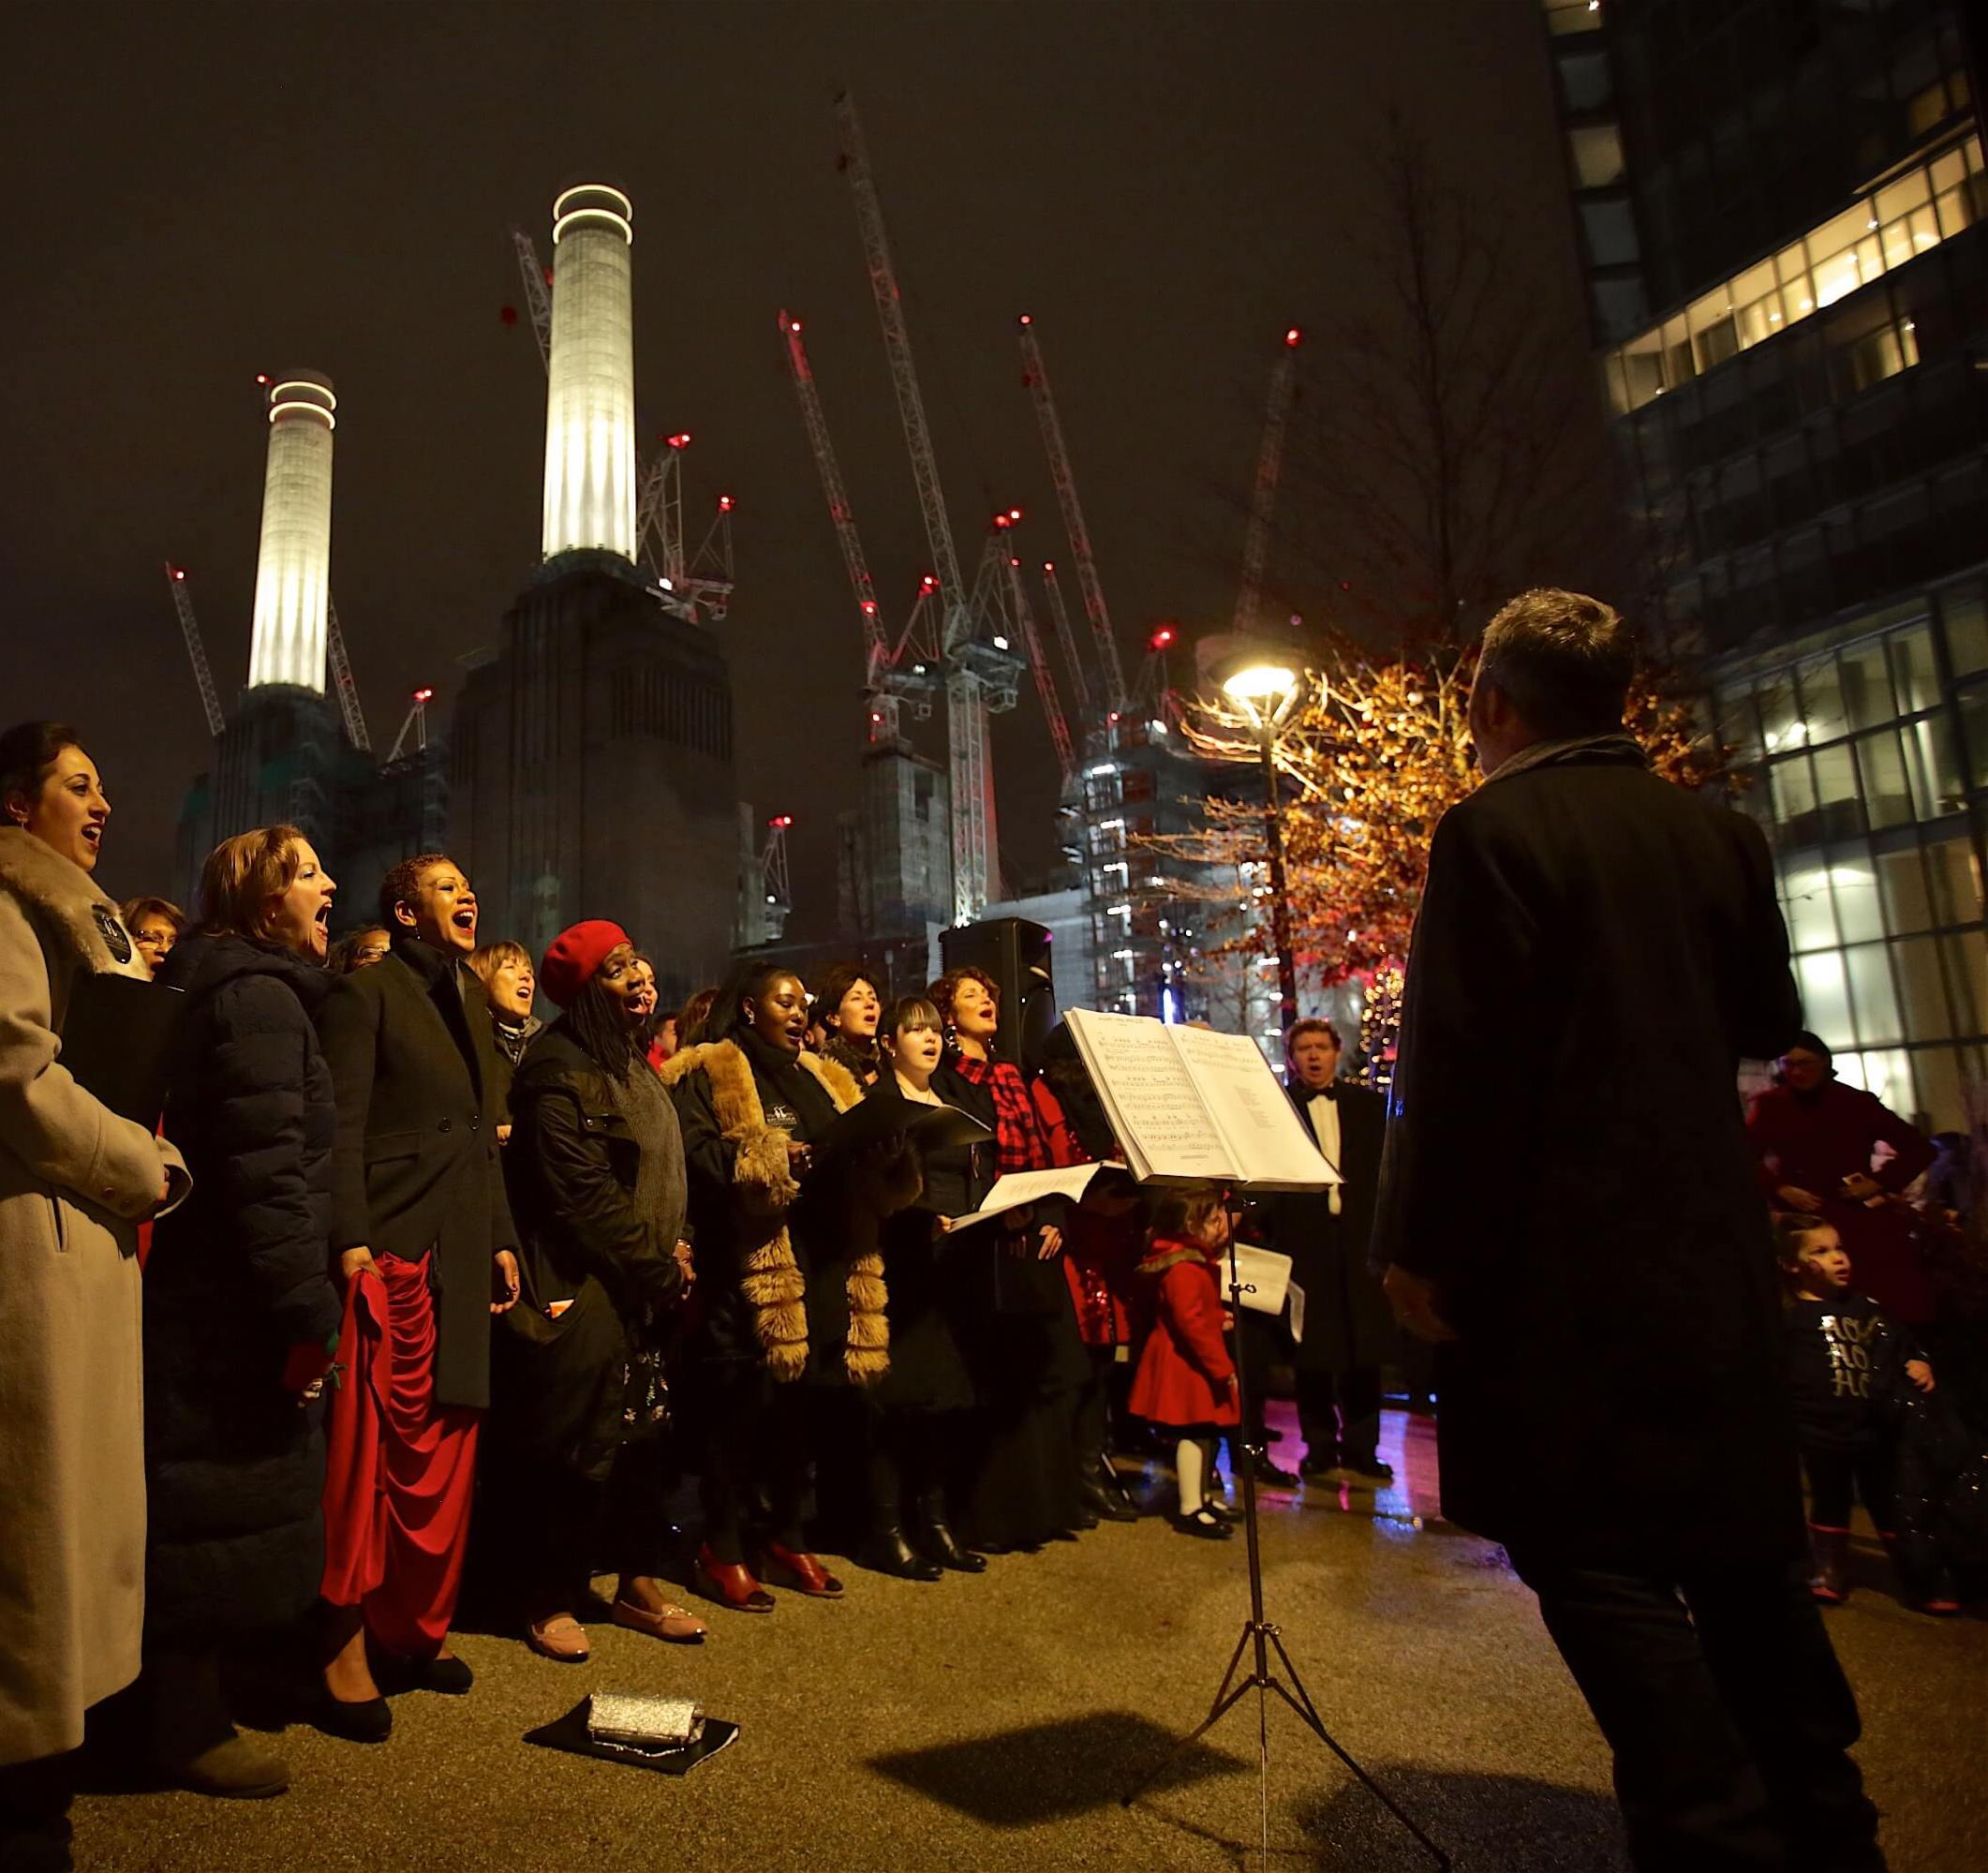 The Winter Village Launch at Battersea Power Station